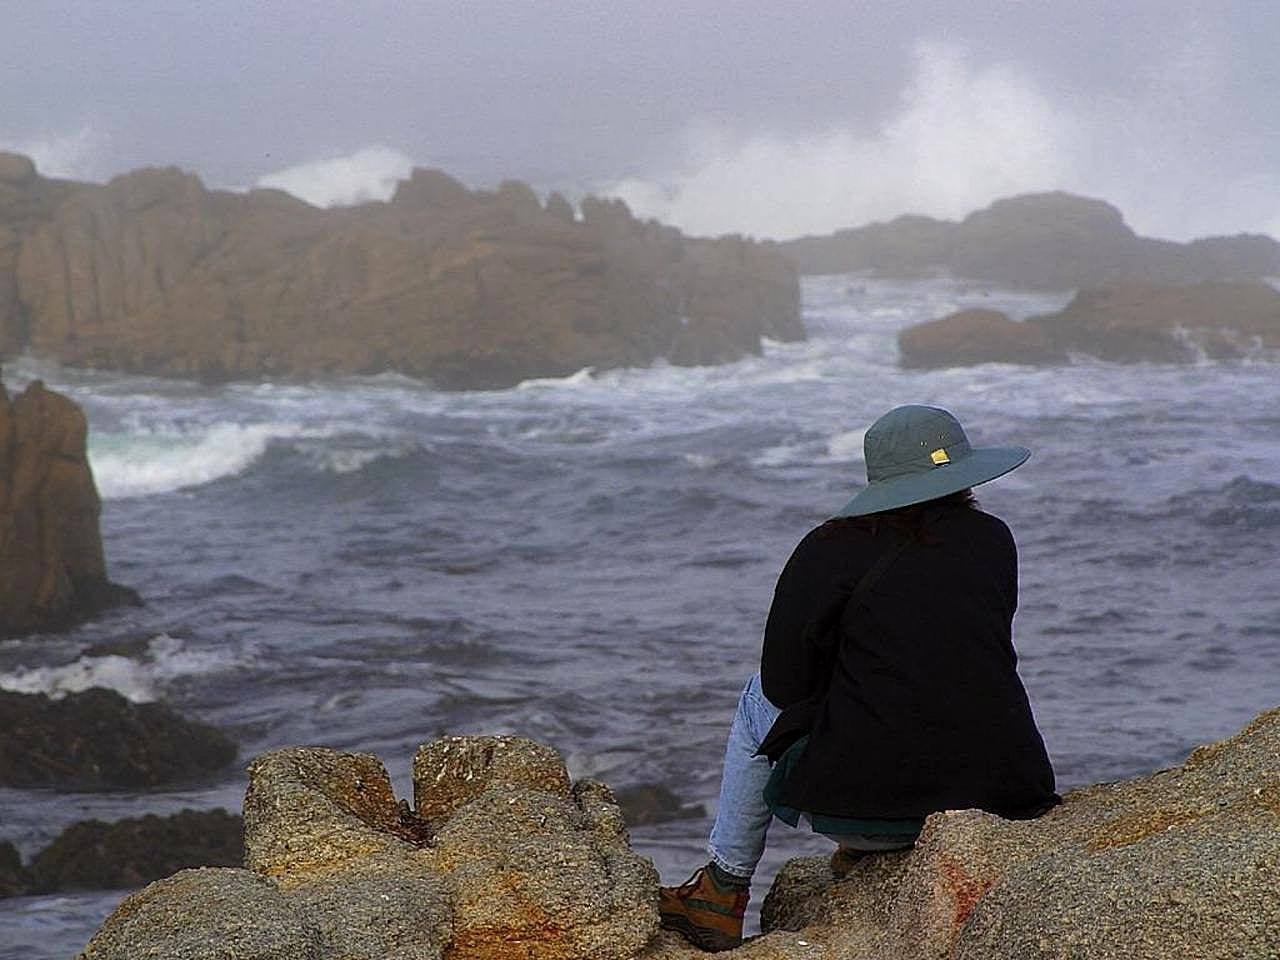 Woman in hat overlooking a rainy sea, photo credit: Pixnio